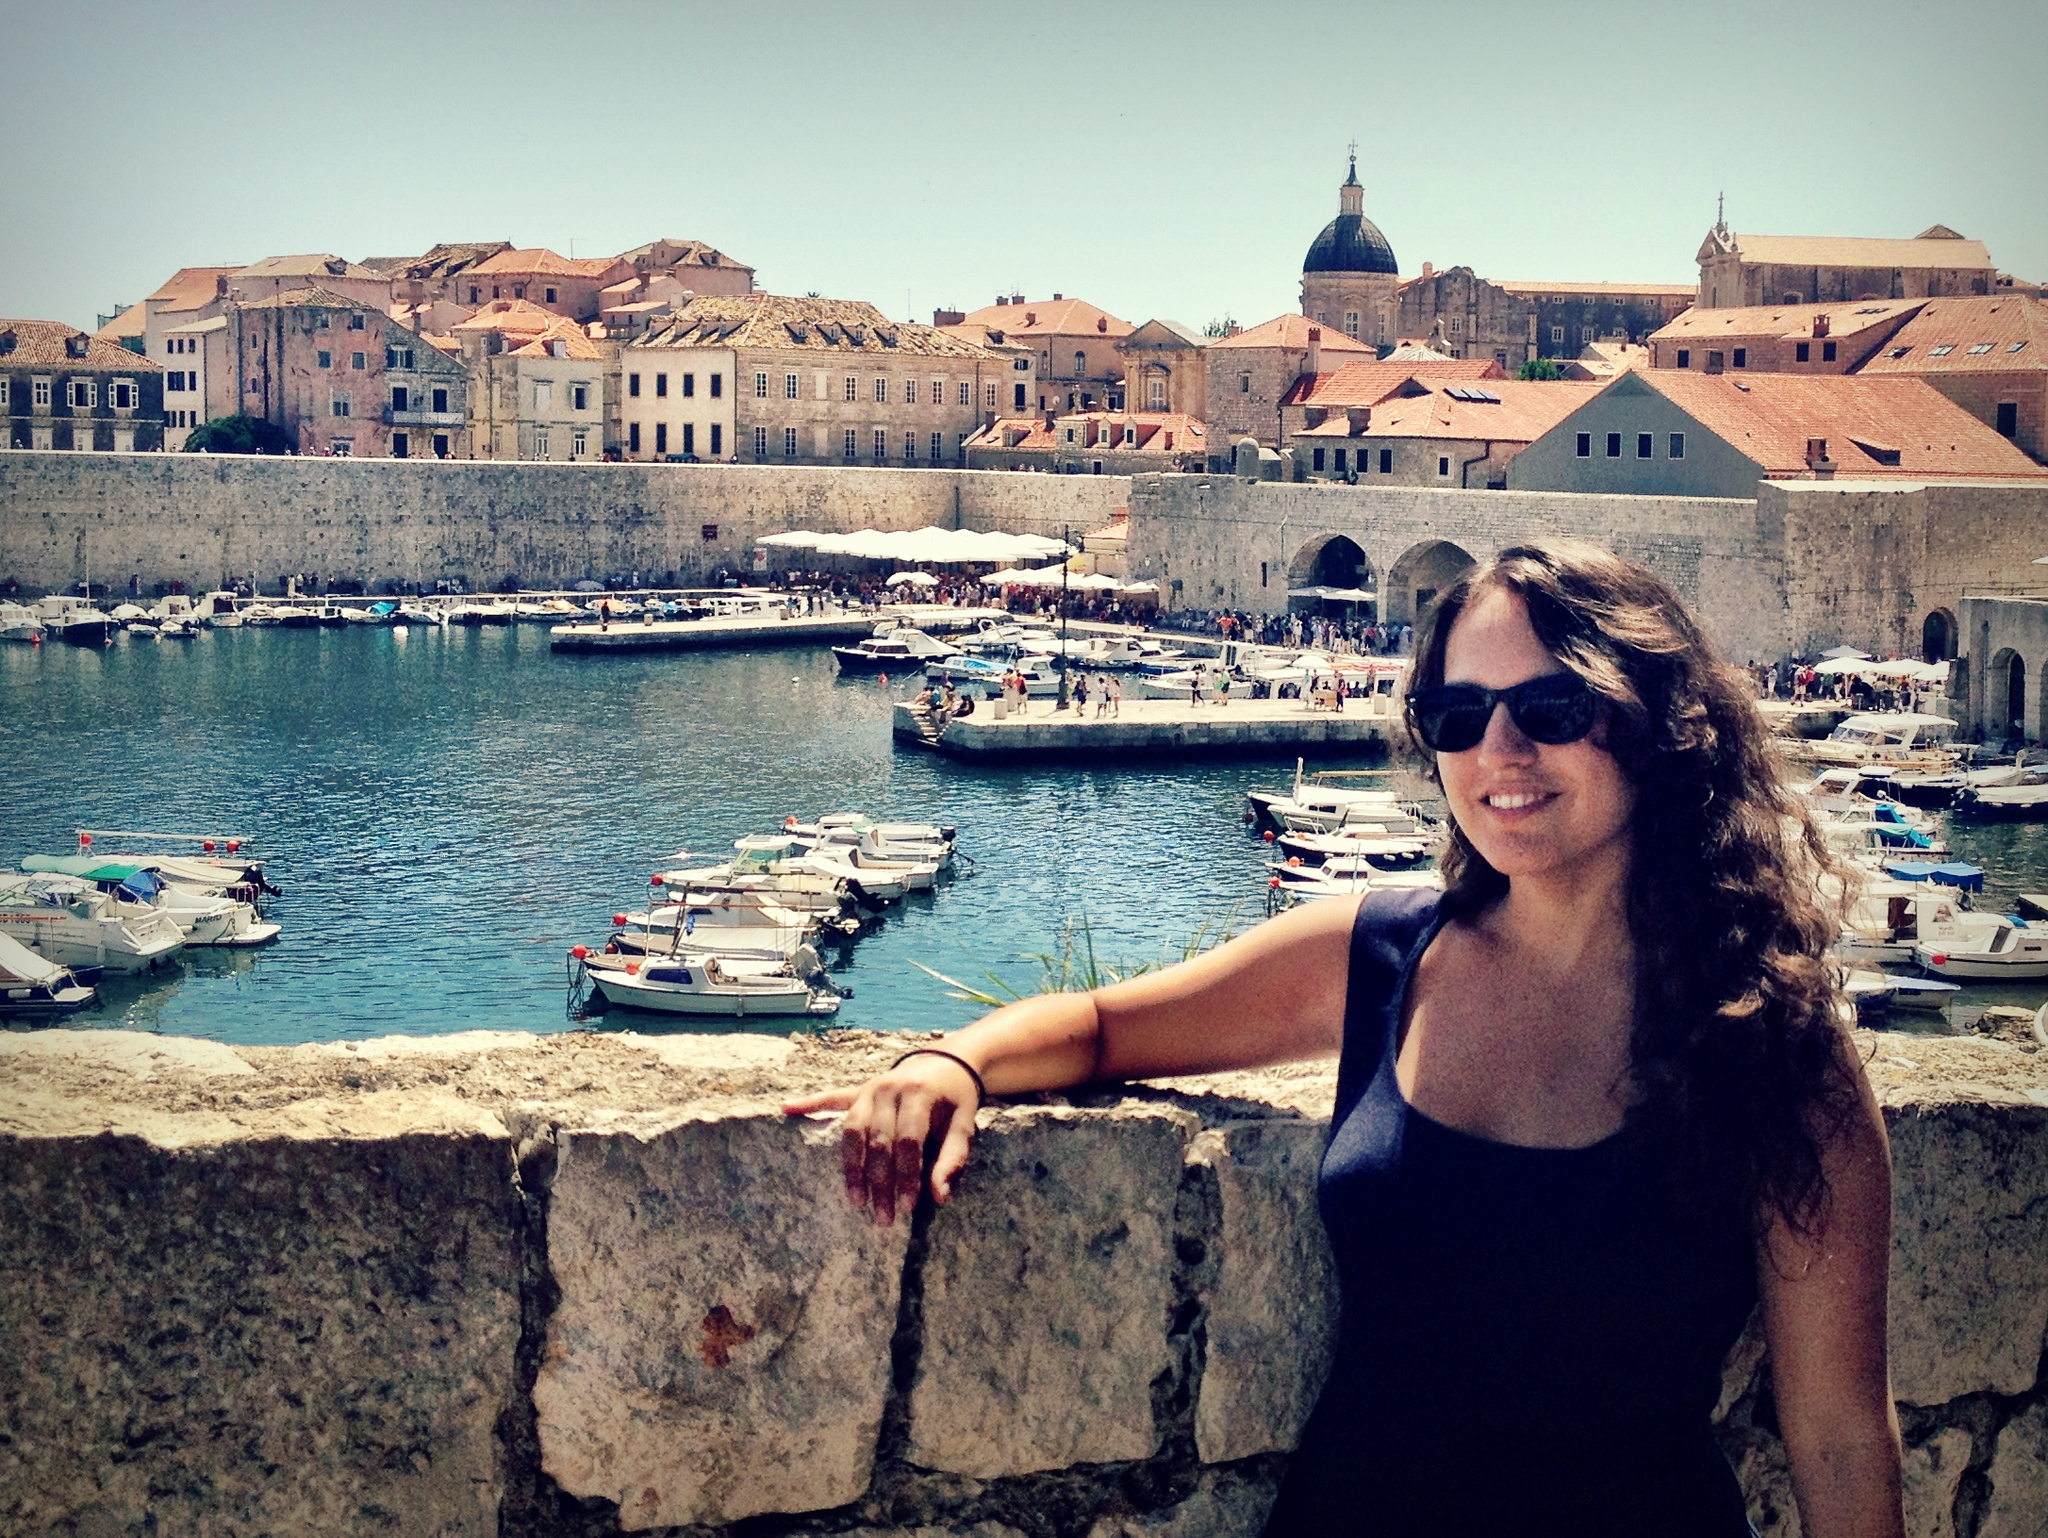 Kate wears a navy blue dress and sunglasses and poses in front of the old port of Dubrovnik, several boats in the water and the old city behind her.